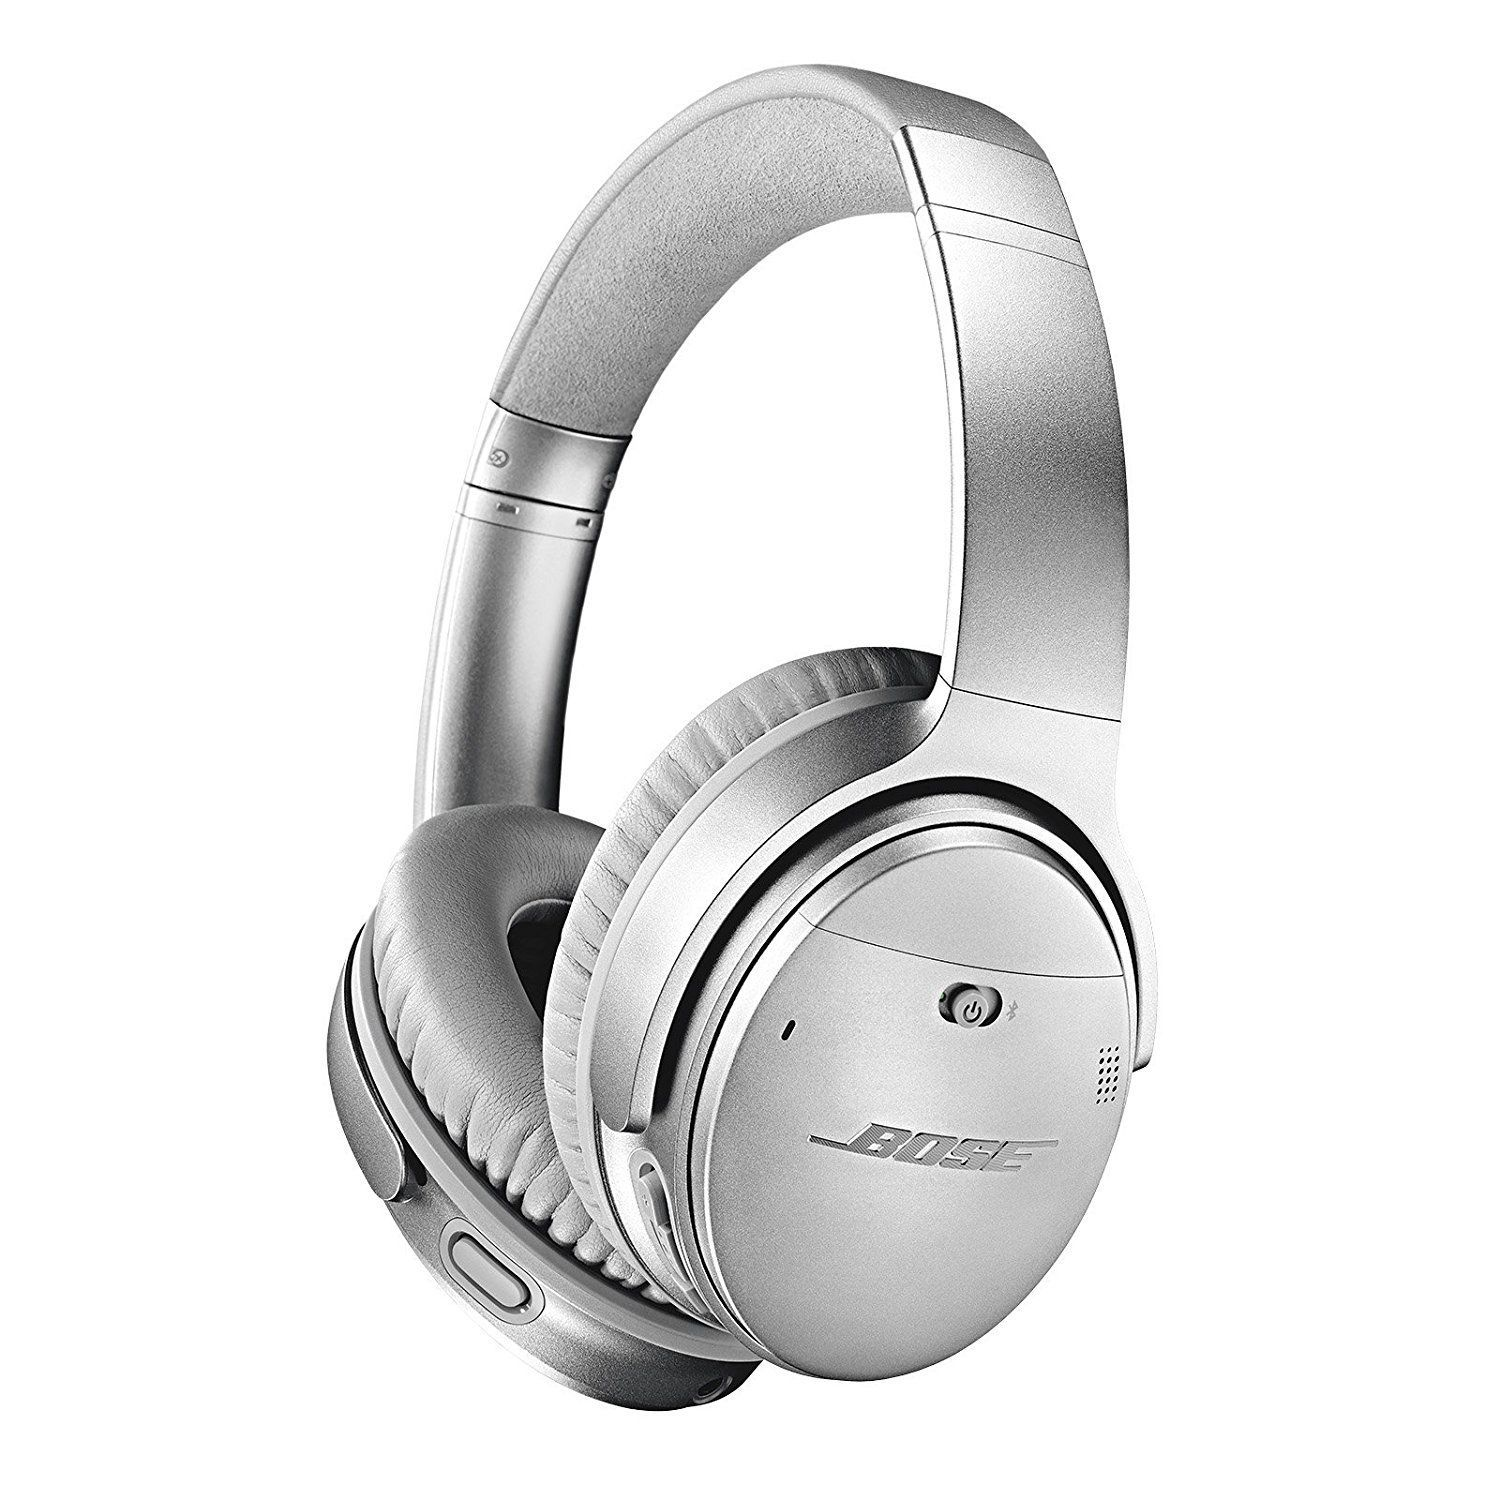 Bose QuietComfort 35 (Series II) Wireless Noise-Canceling Headphones